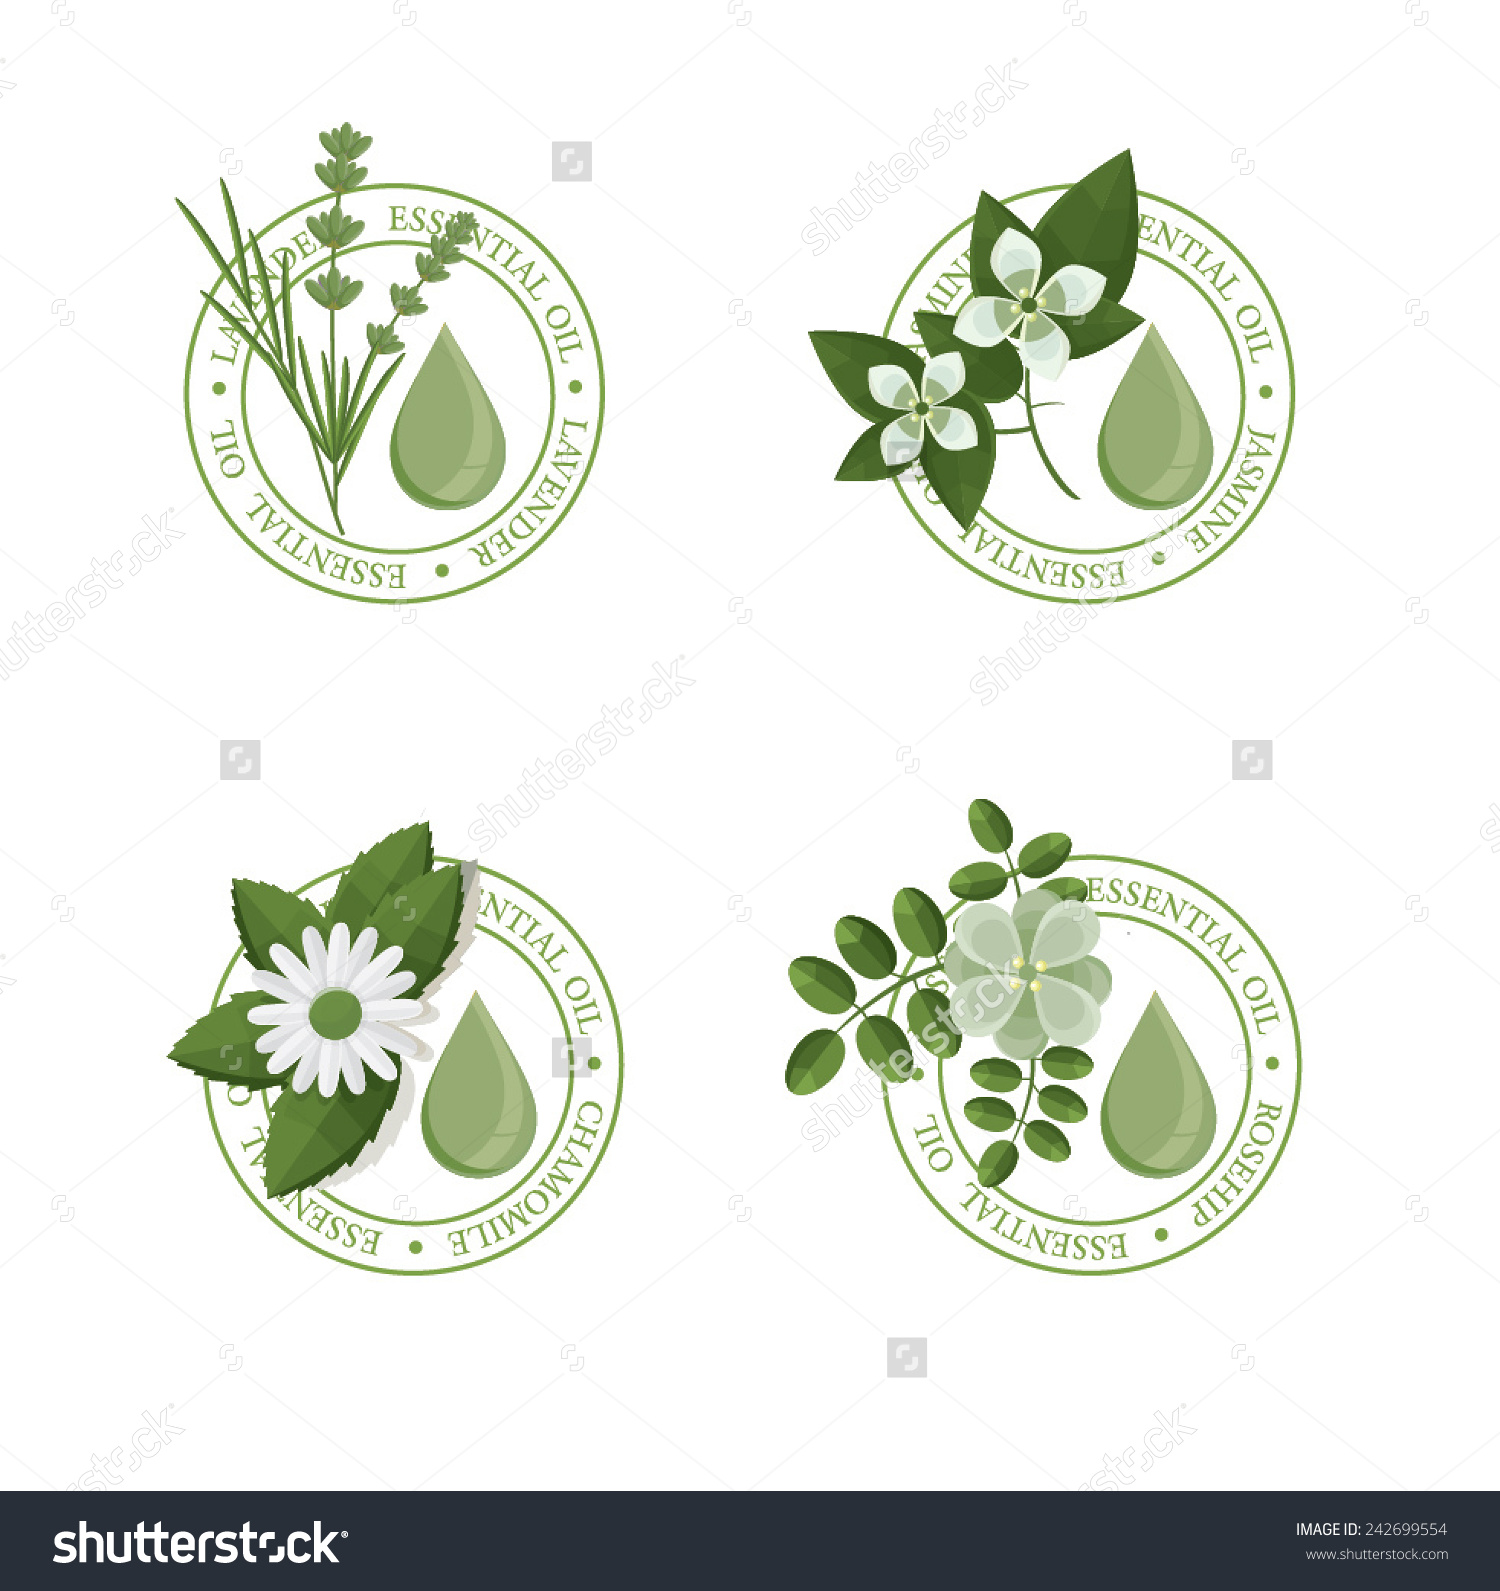 Essential oil clipart #4